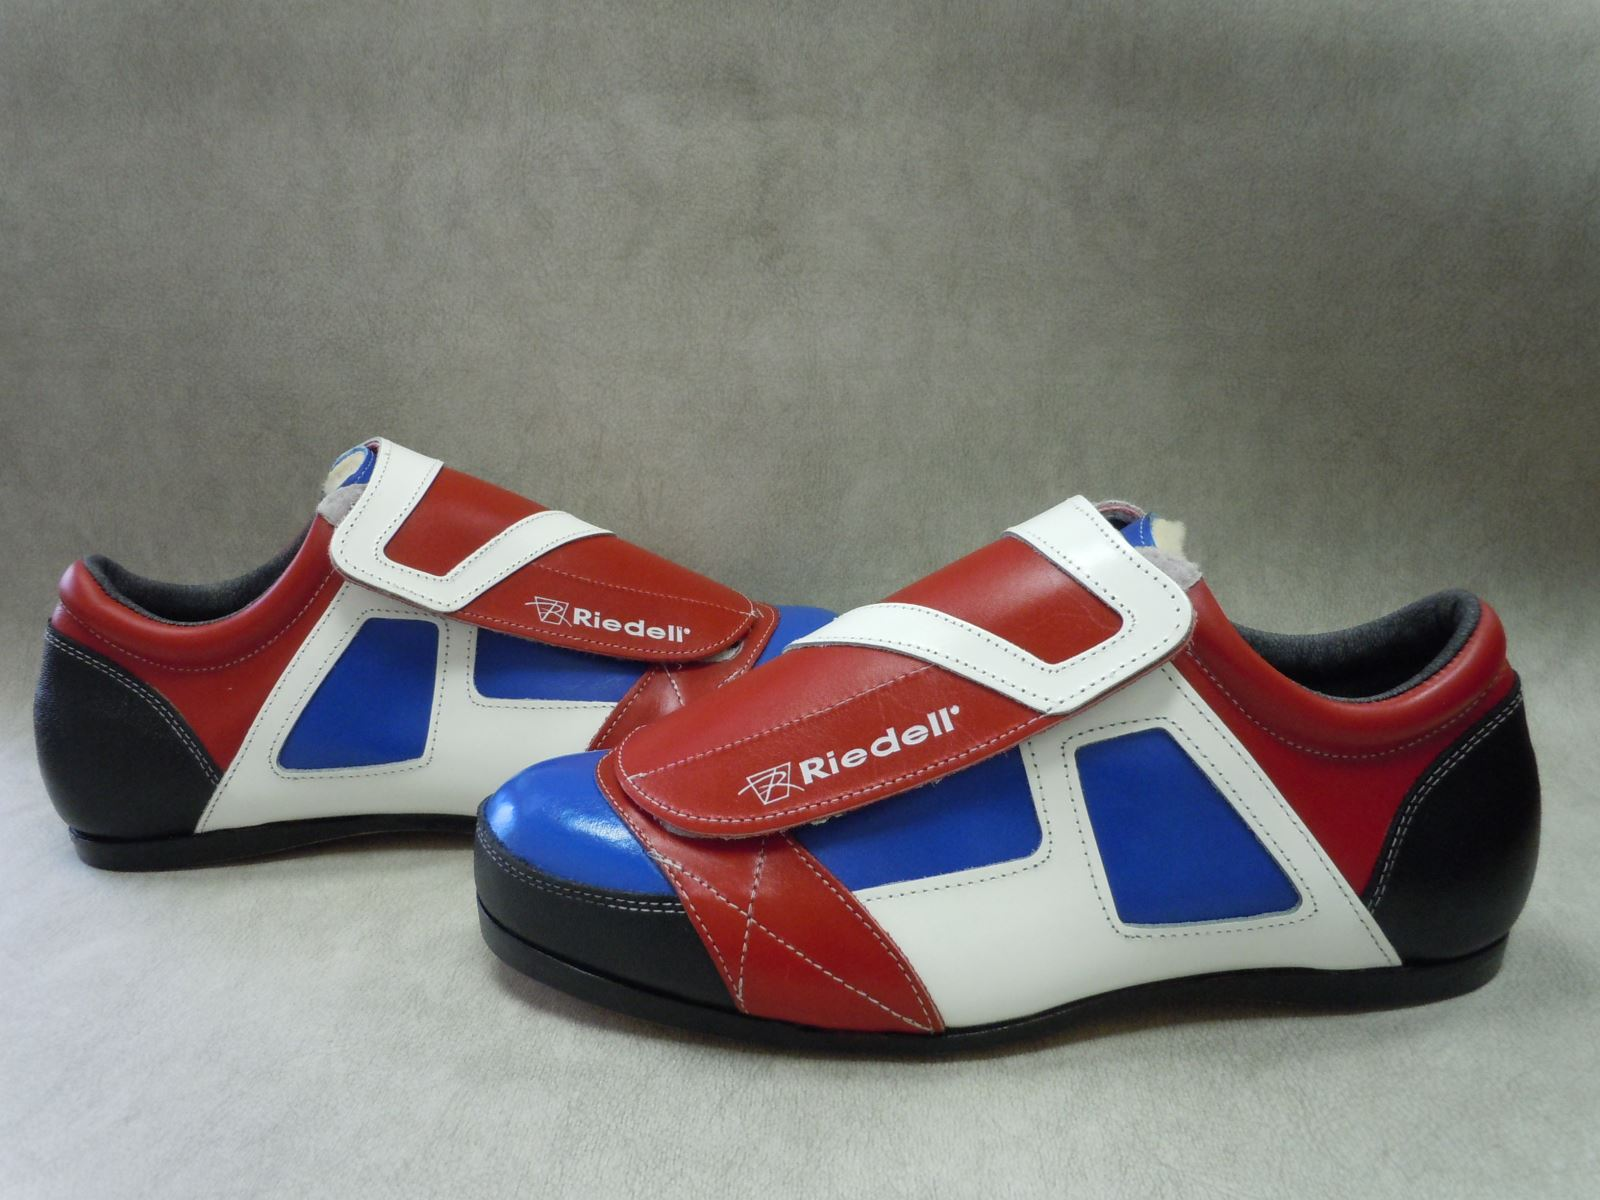 Riedell ColorLab Boot - Model 951 with Red, White, and Royal Blue Leather